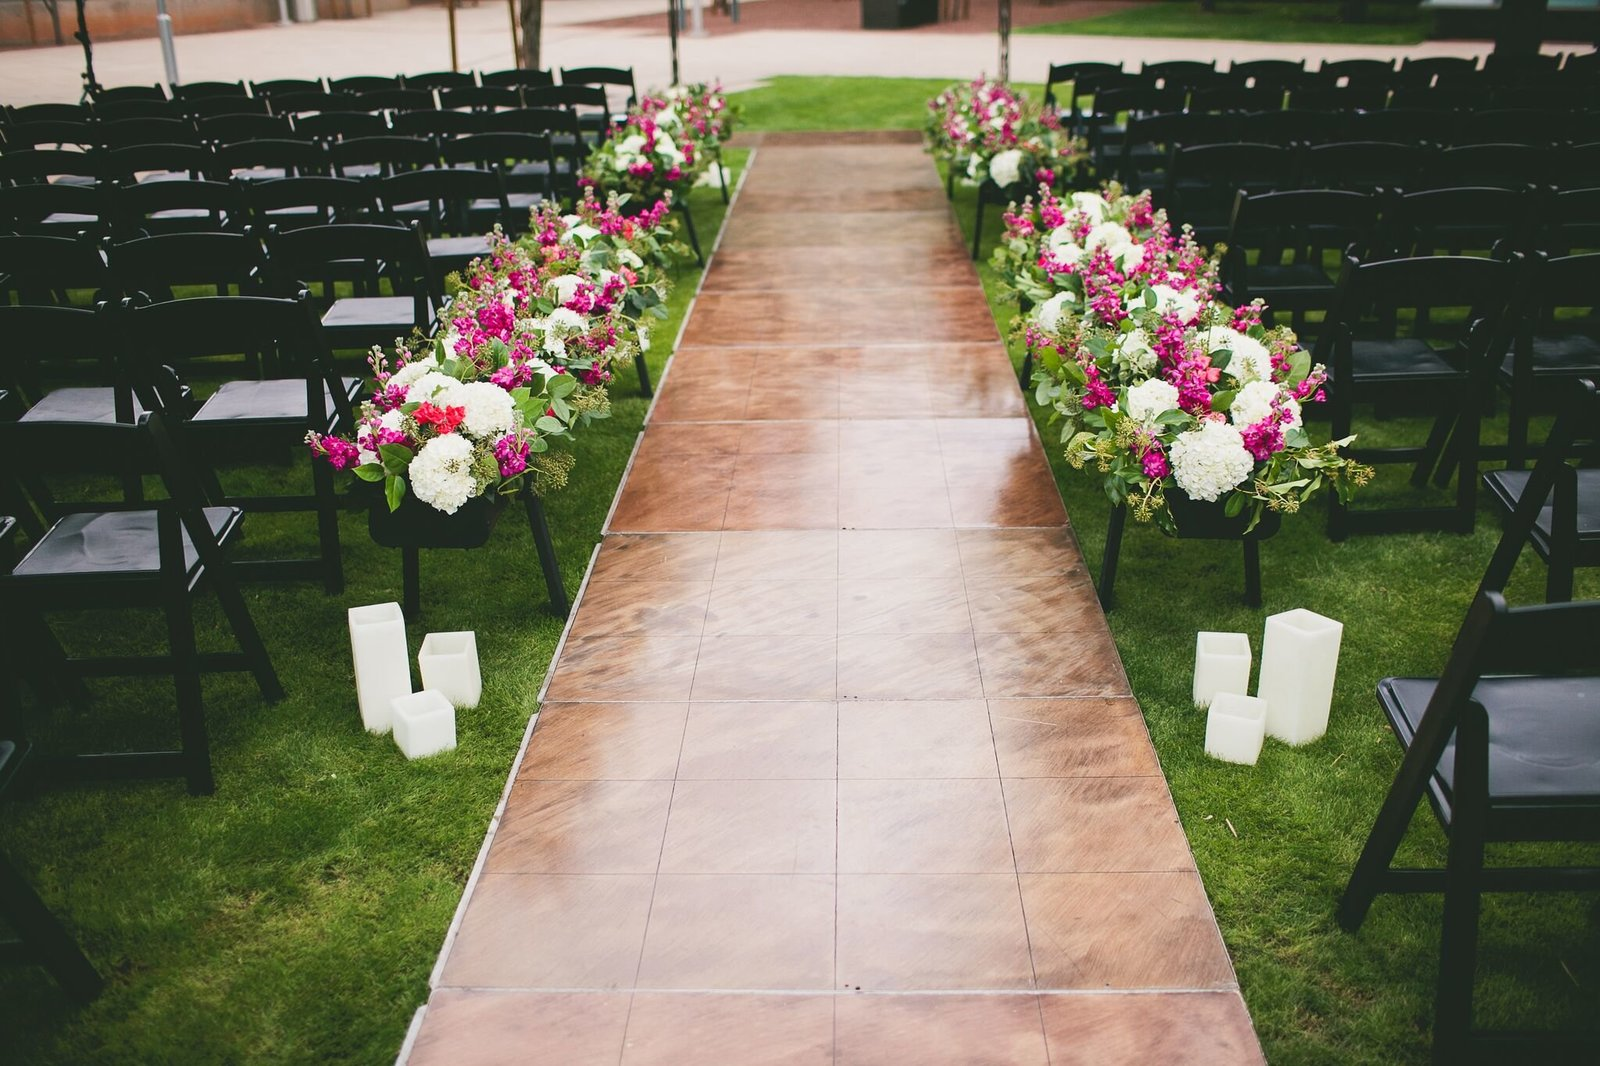 Your-Event-Florist-Arizona-Wedding-Flowers114